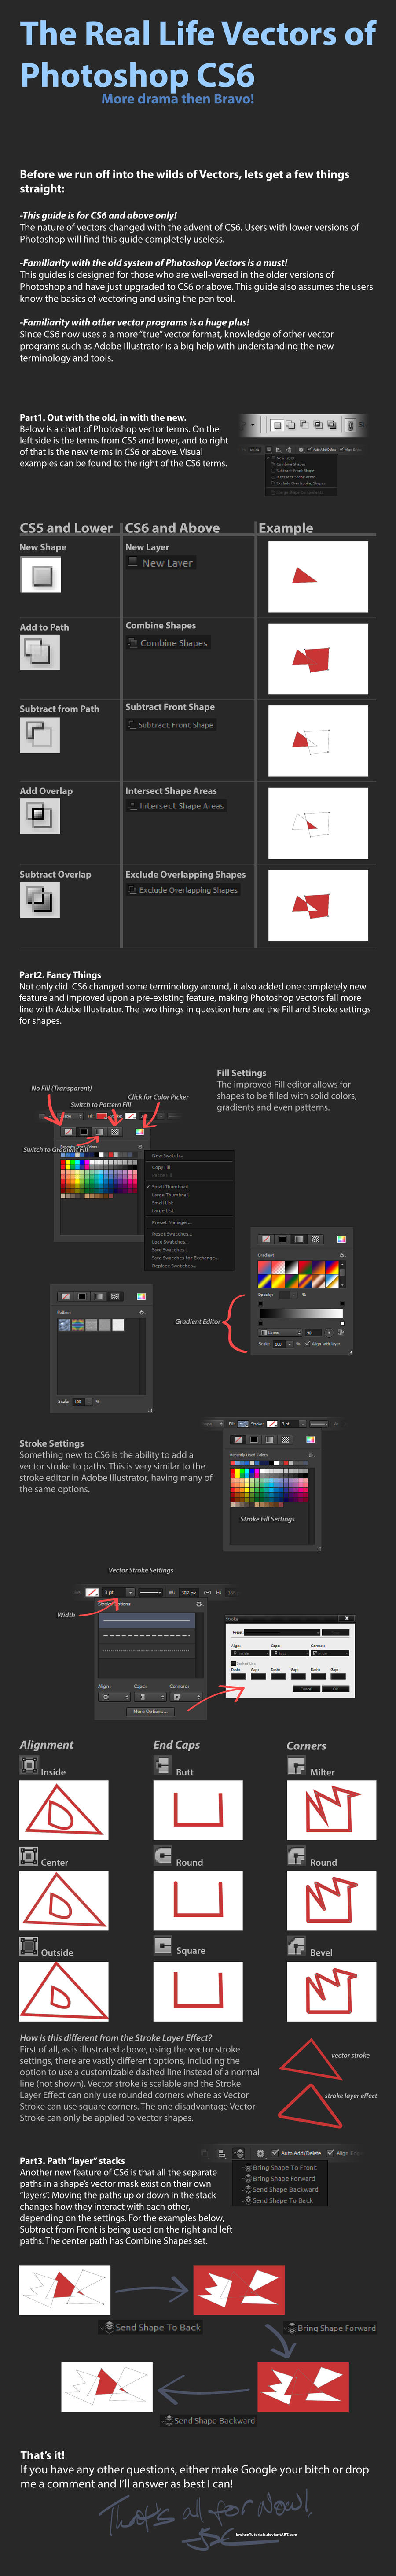 Photoshop CS6 Vector Guide by JRCnrd